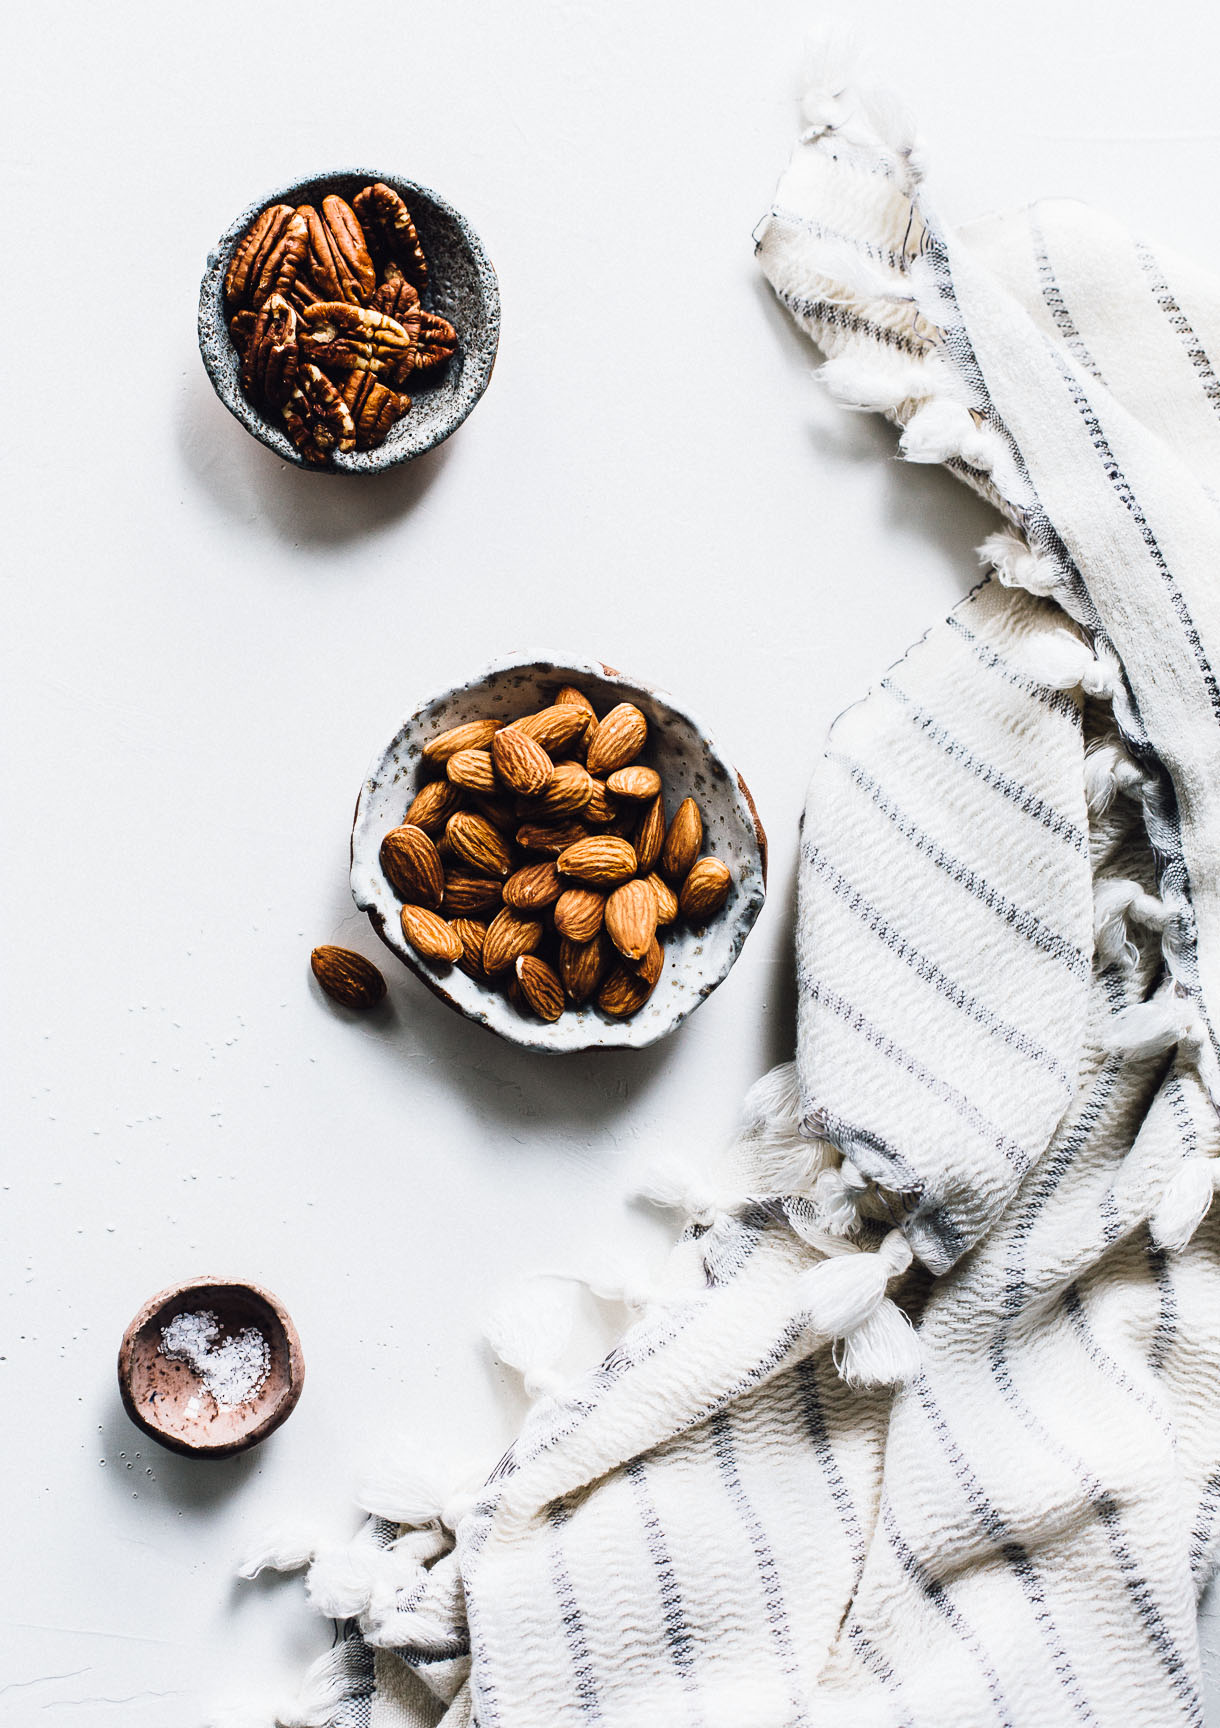 Homemade Almond Pecan Milk recipe : dairy-free milk, plant milk